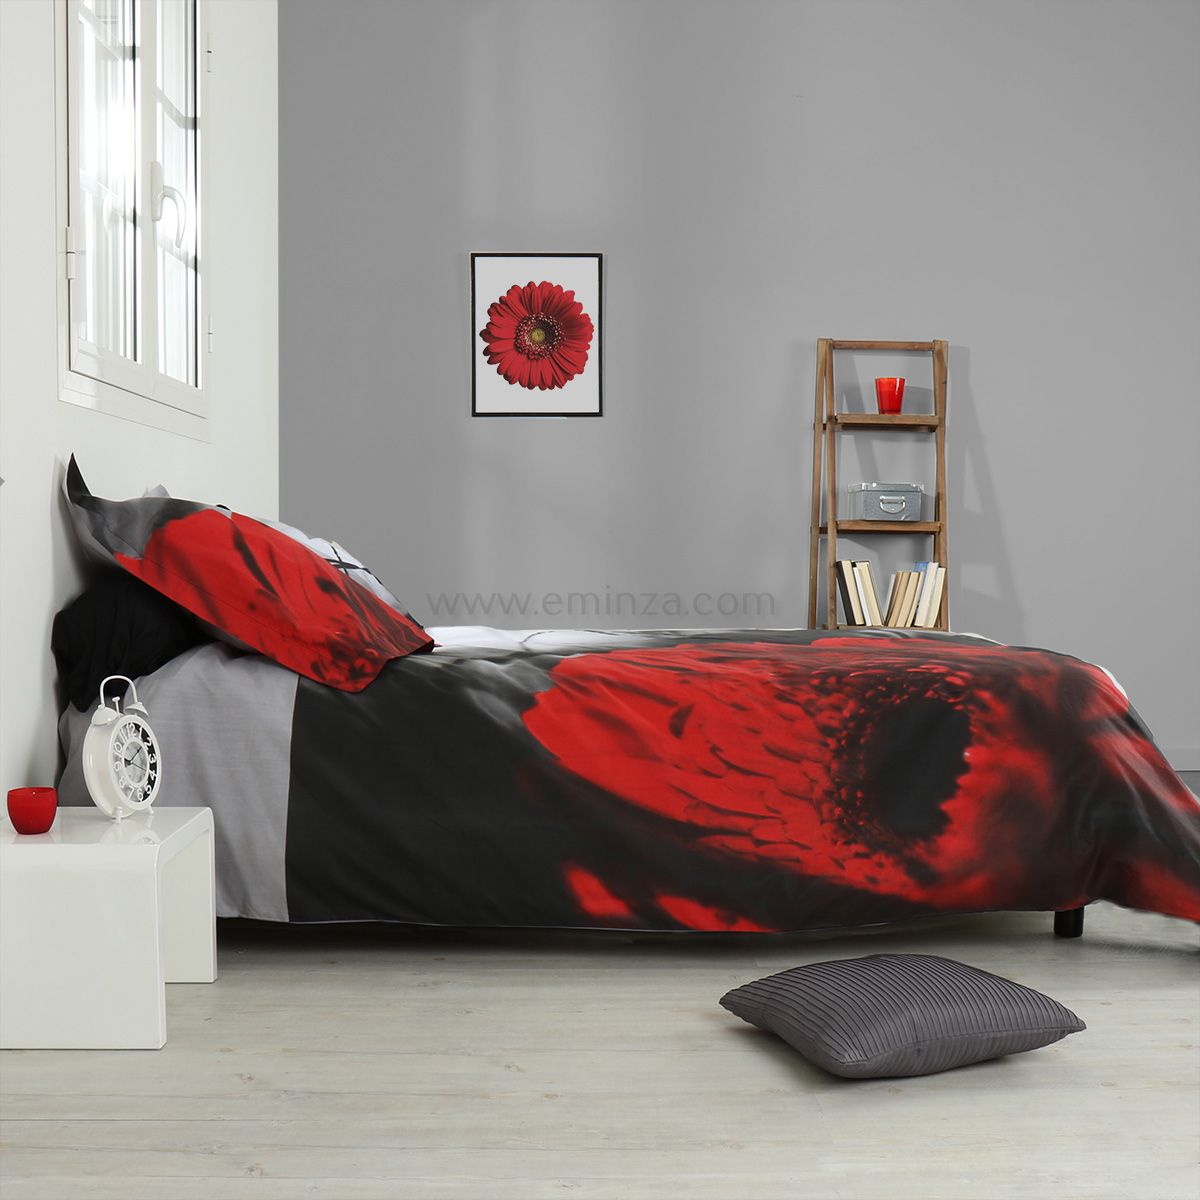 housse de couette et une taie 140 cm pivoina housse de couette eminza. Black Bedroom Furniture Sets. Home Design Ideas